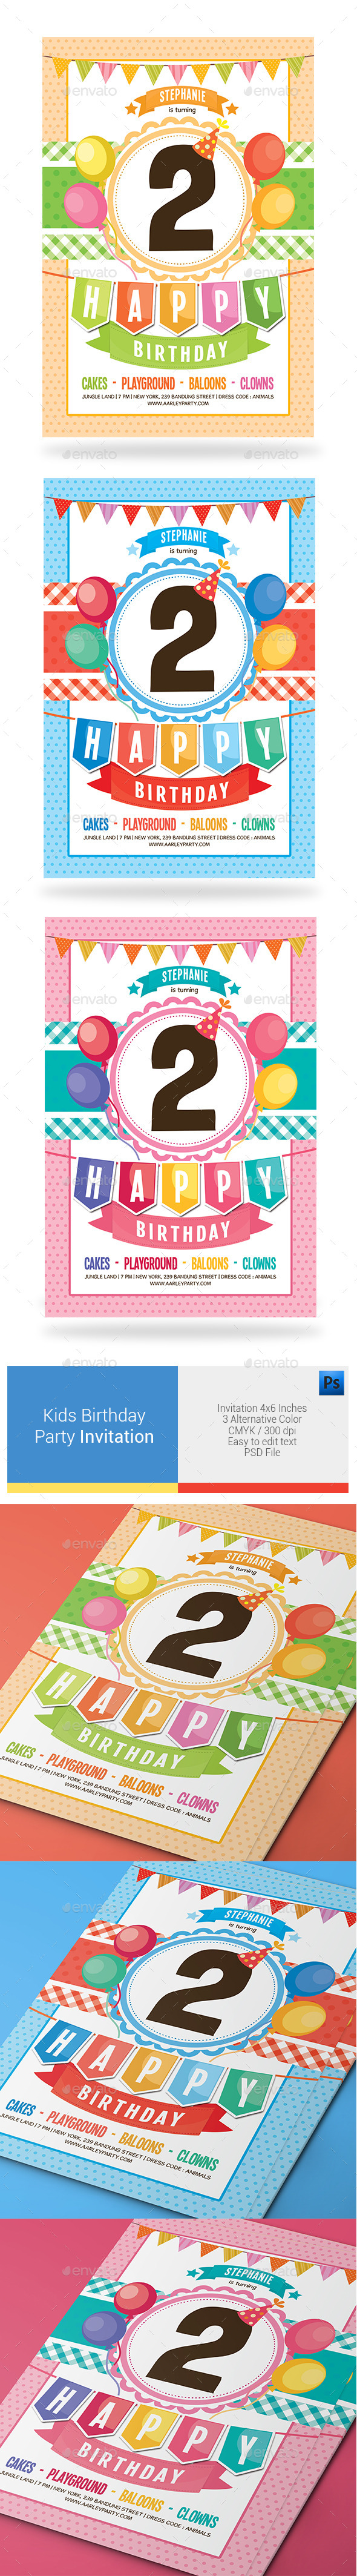 Kids Birthday Party Invitation - Birthday Greeting Cards